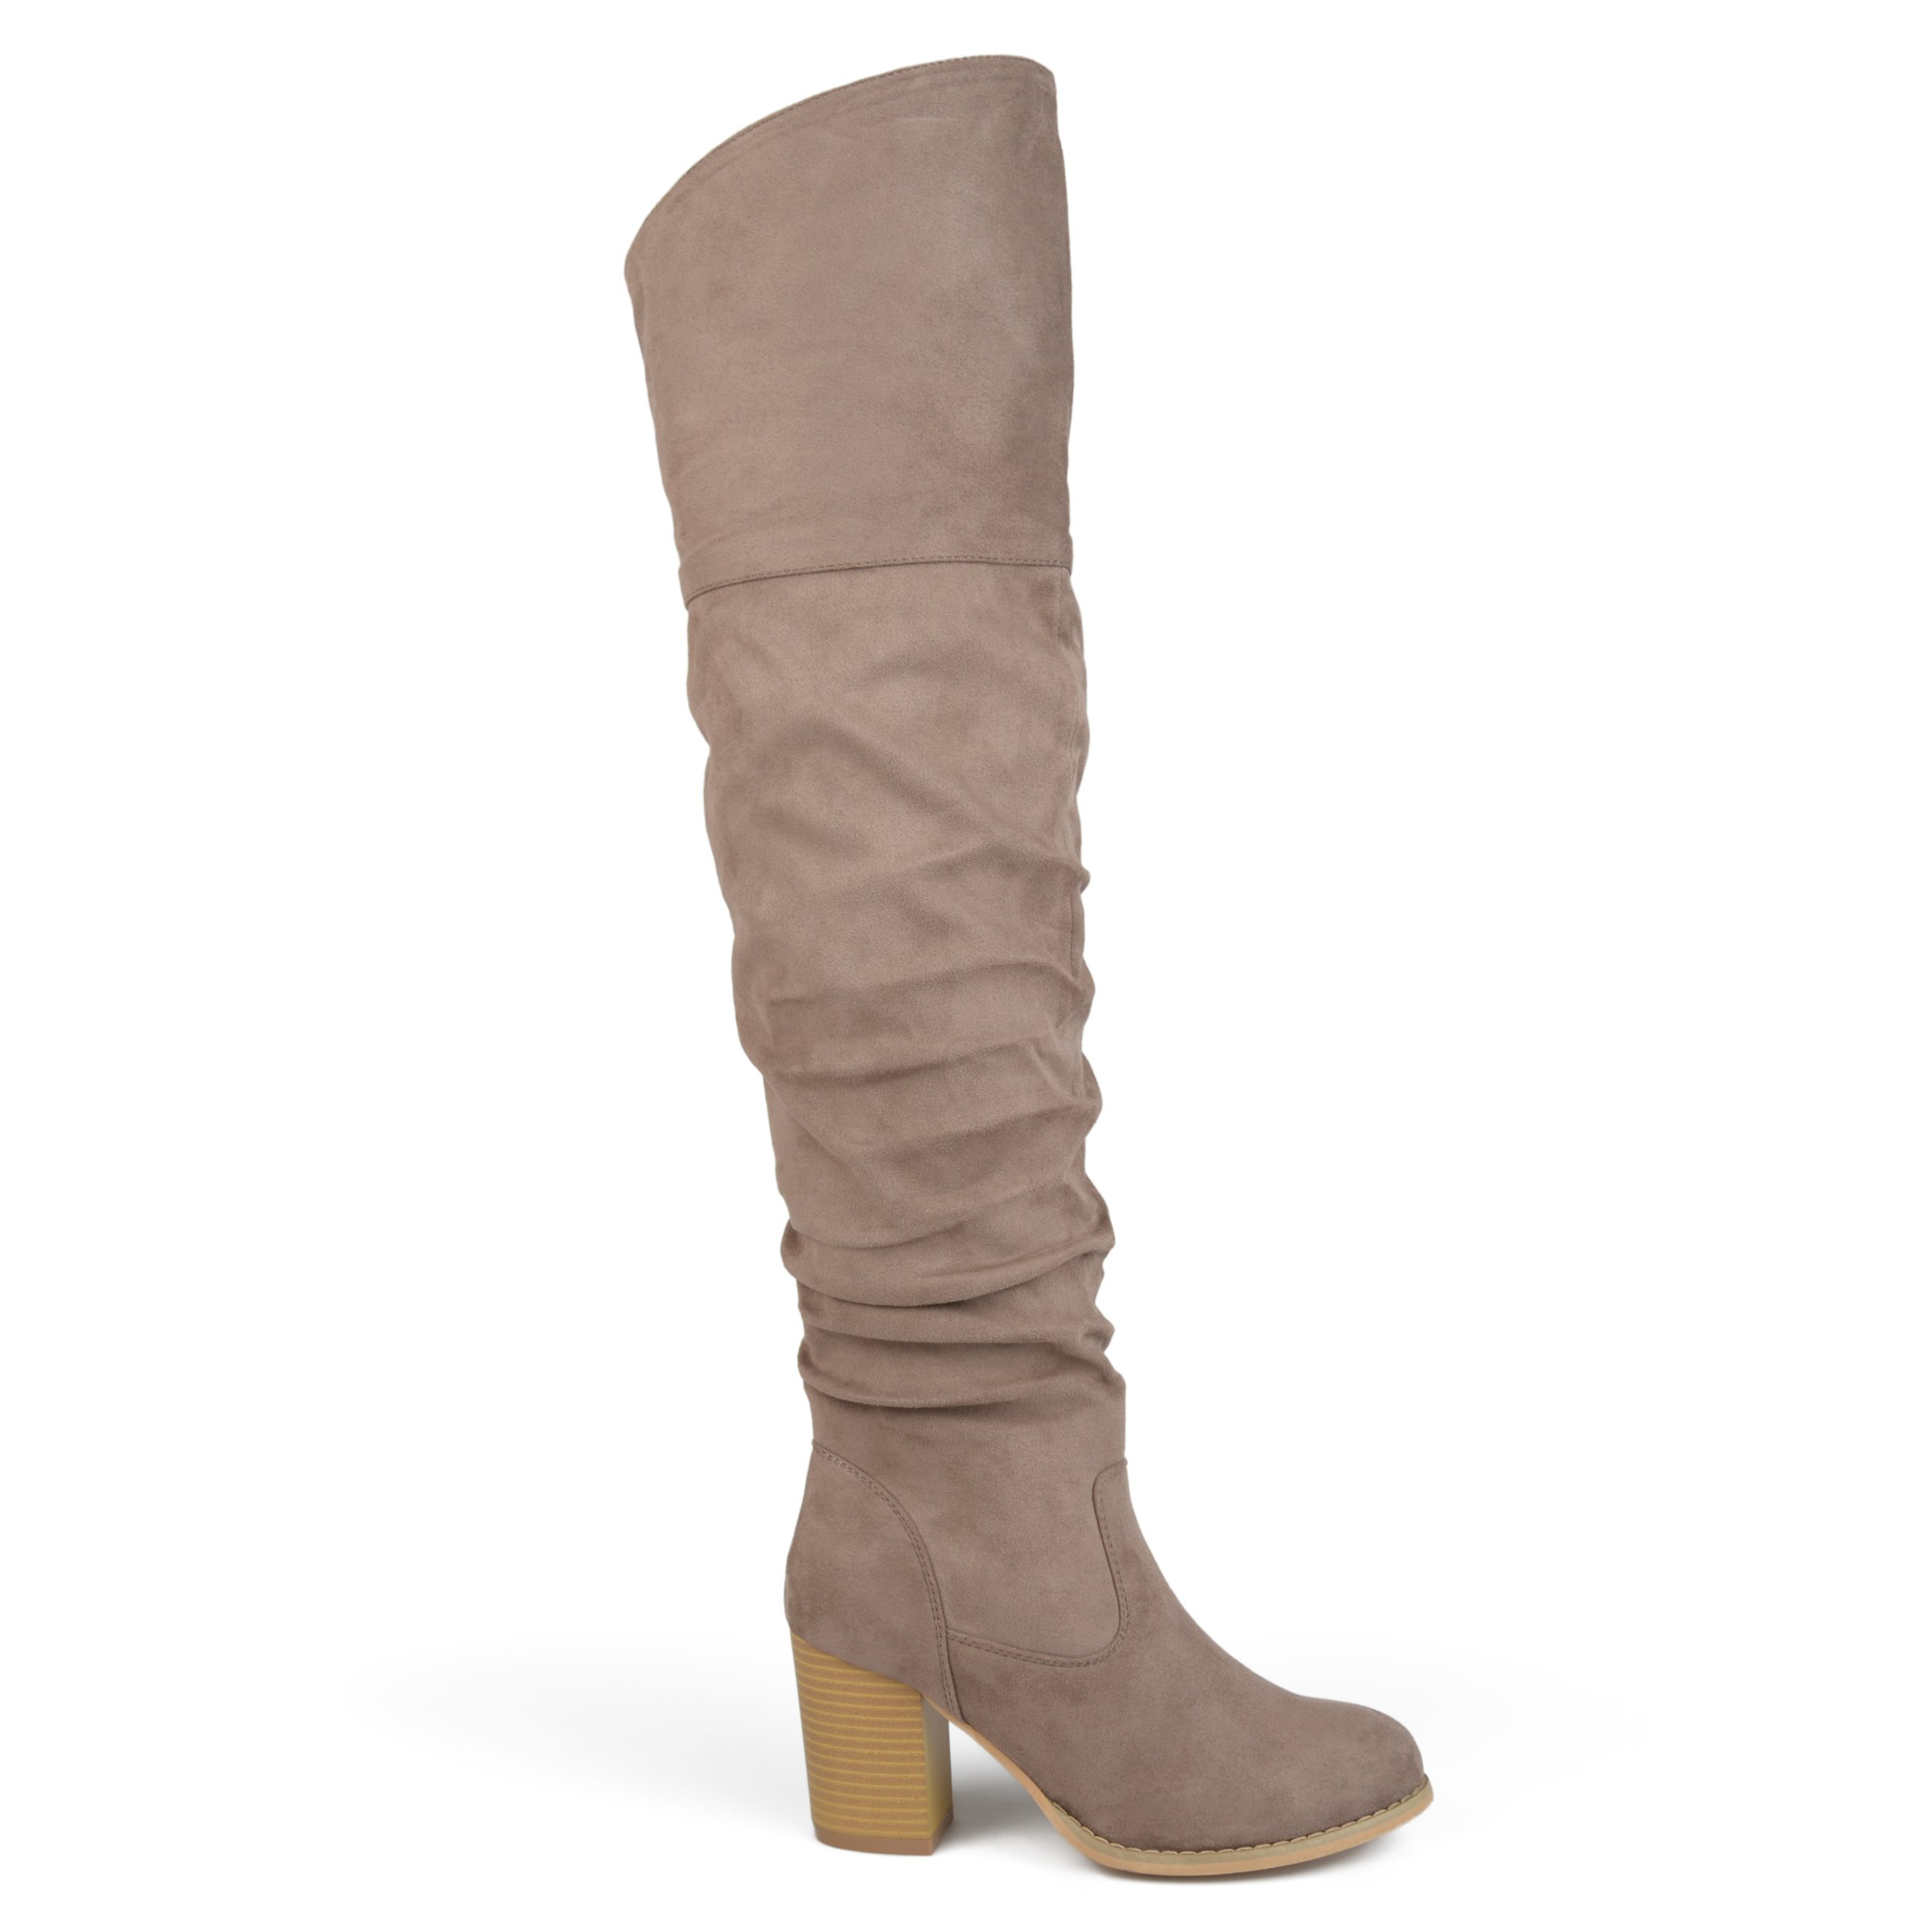 Brinley Co. Womens Regular Wide Calf and Extra Wide Calf Ruched Stacked Heel Faux Suede Over-The-Knee Boots Taupe, 8 Regular US